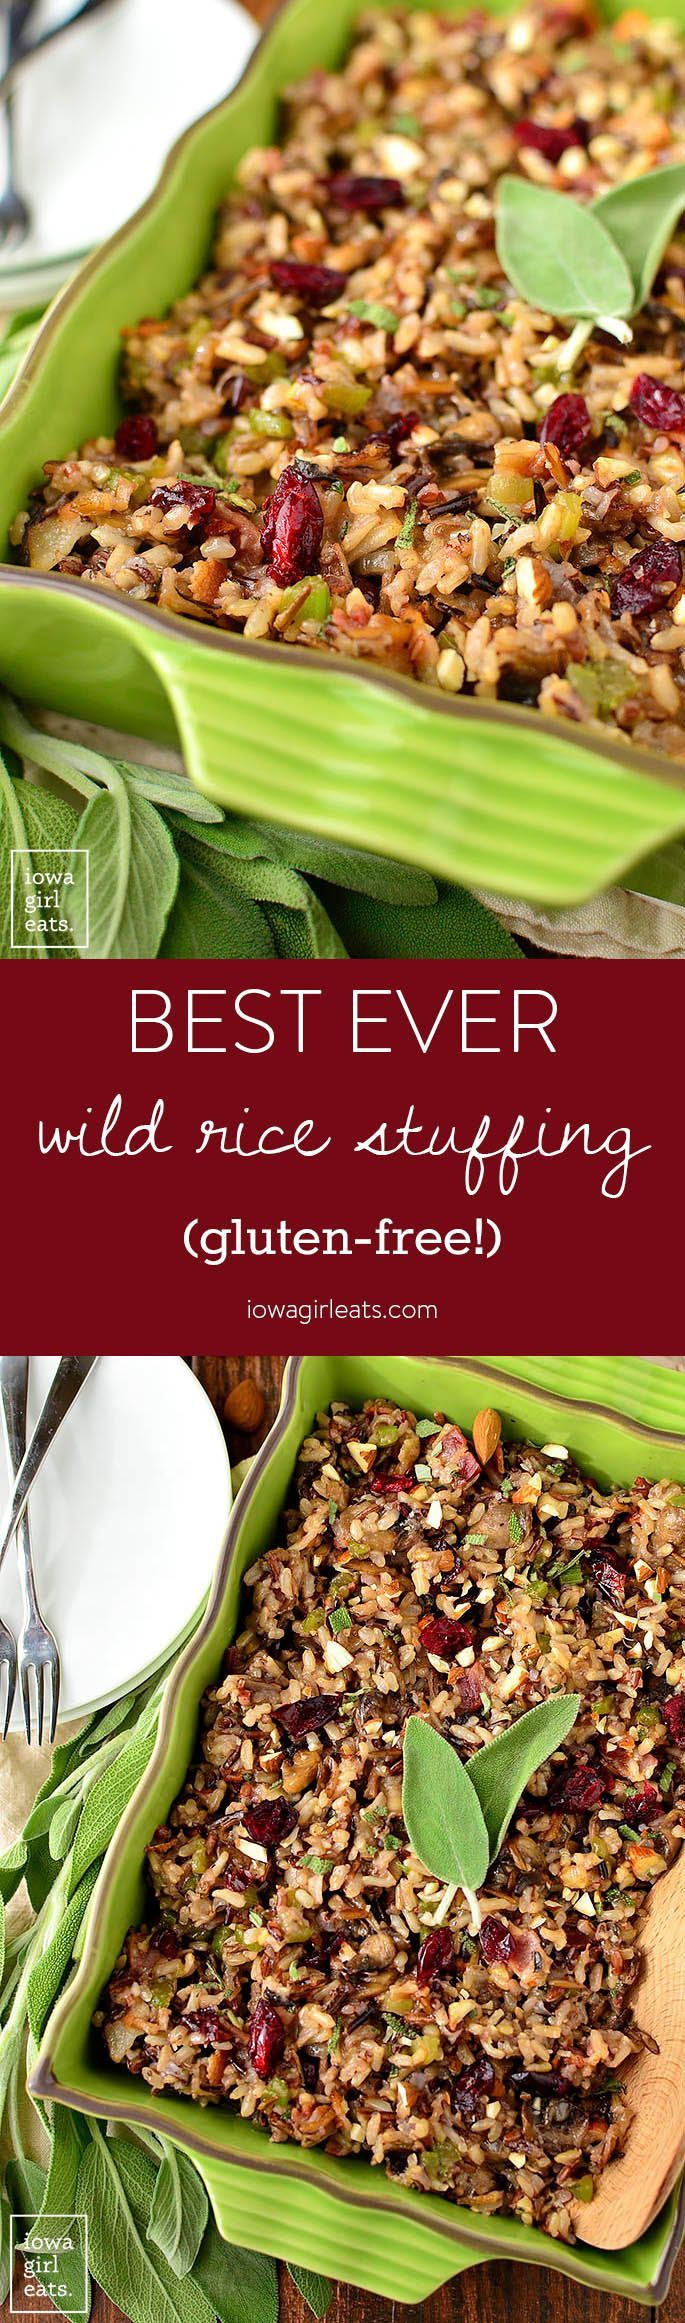 Best Ever Wild Rice Stuffing is full of fall flavors like herbs, bacon, mushrooms, parmesan, dried cranberries, almonds, and garlic. A delicious side for the holidays! | iowagirleats.com (Autumn Baking Gluten Free)